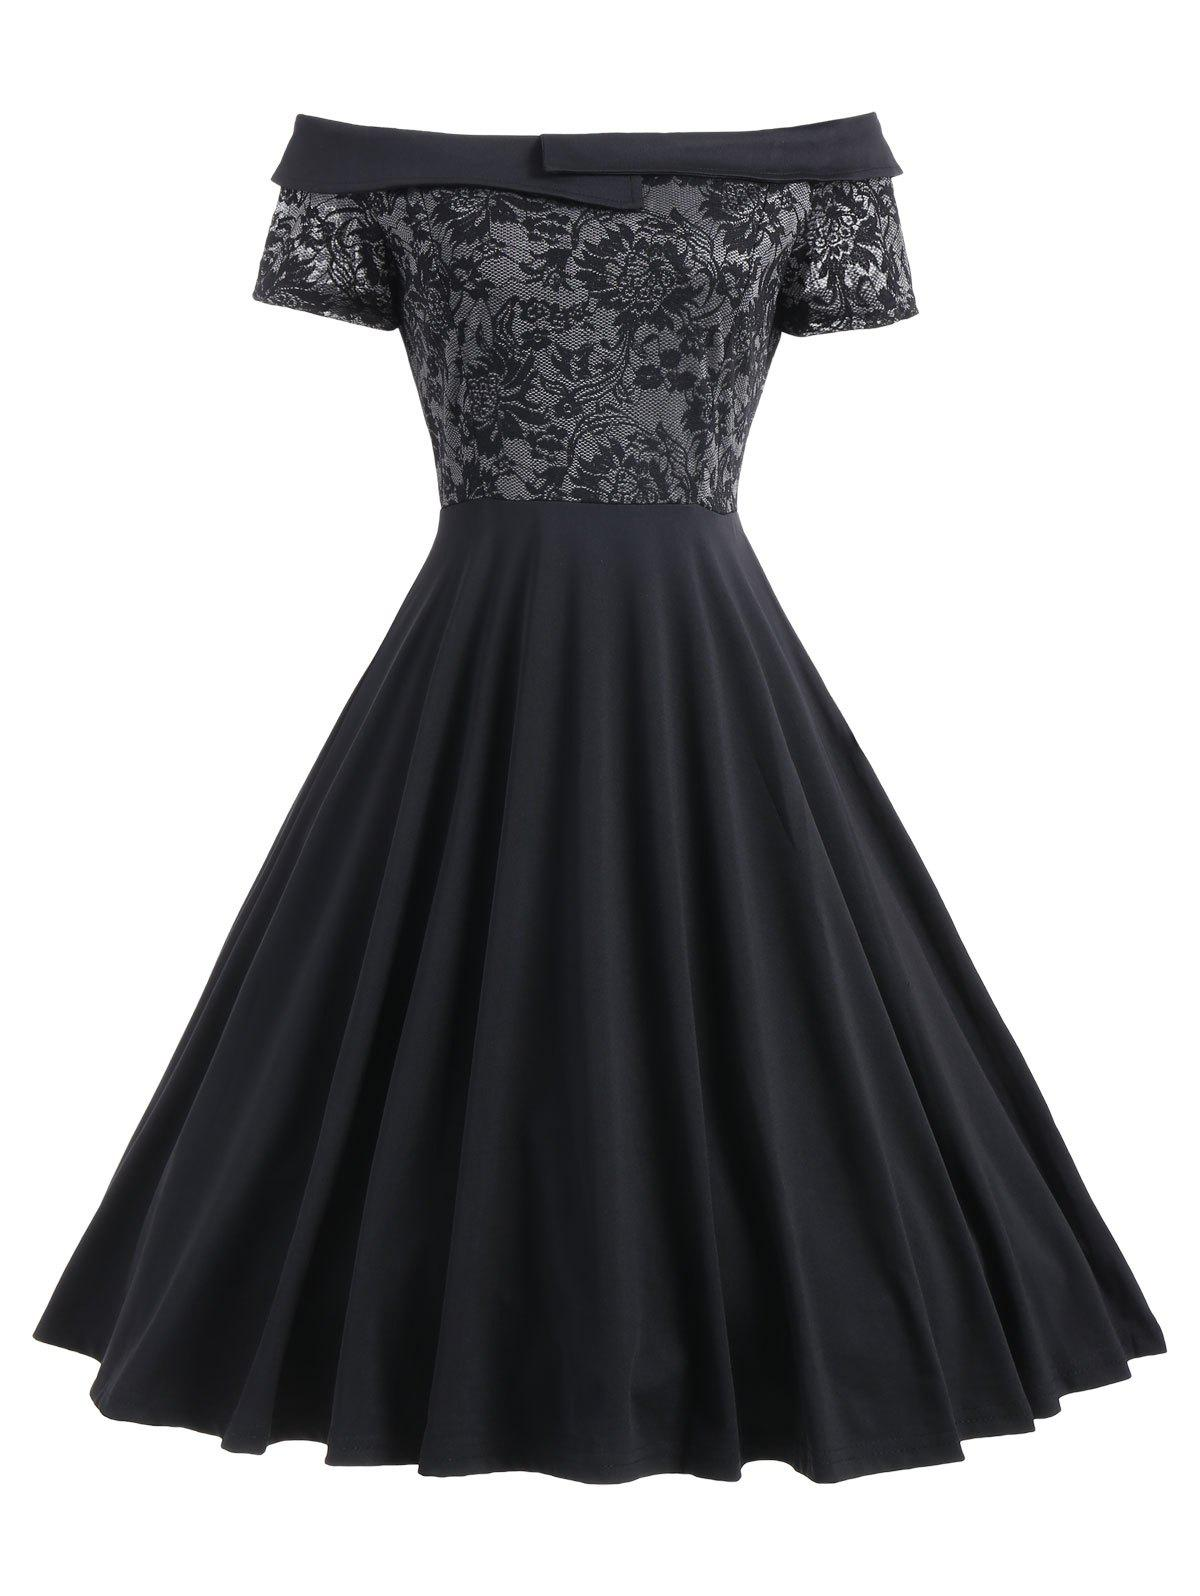 Lace Trim Off The Shoulder Cocktail DressWOMEN<br><br>Size: XL; Color: BLACK; Style: Vintage; Material: Polyester,Spandex; Silhouette: A-Line; Dresses Length: Knee-Length; Neckline: Off The Shoulder; Sleeve Length: Short Sleeves; Embellishment: Lace; Pattern Type: Solid; With Belt: No; Season: Fall,Spring; Weight: 0.4200kg; Package Contents: 1 x Dress;